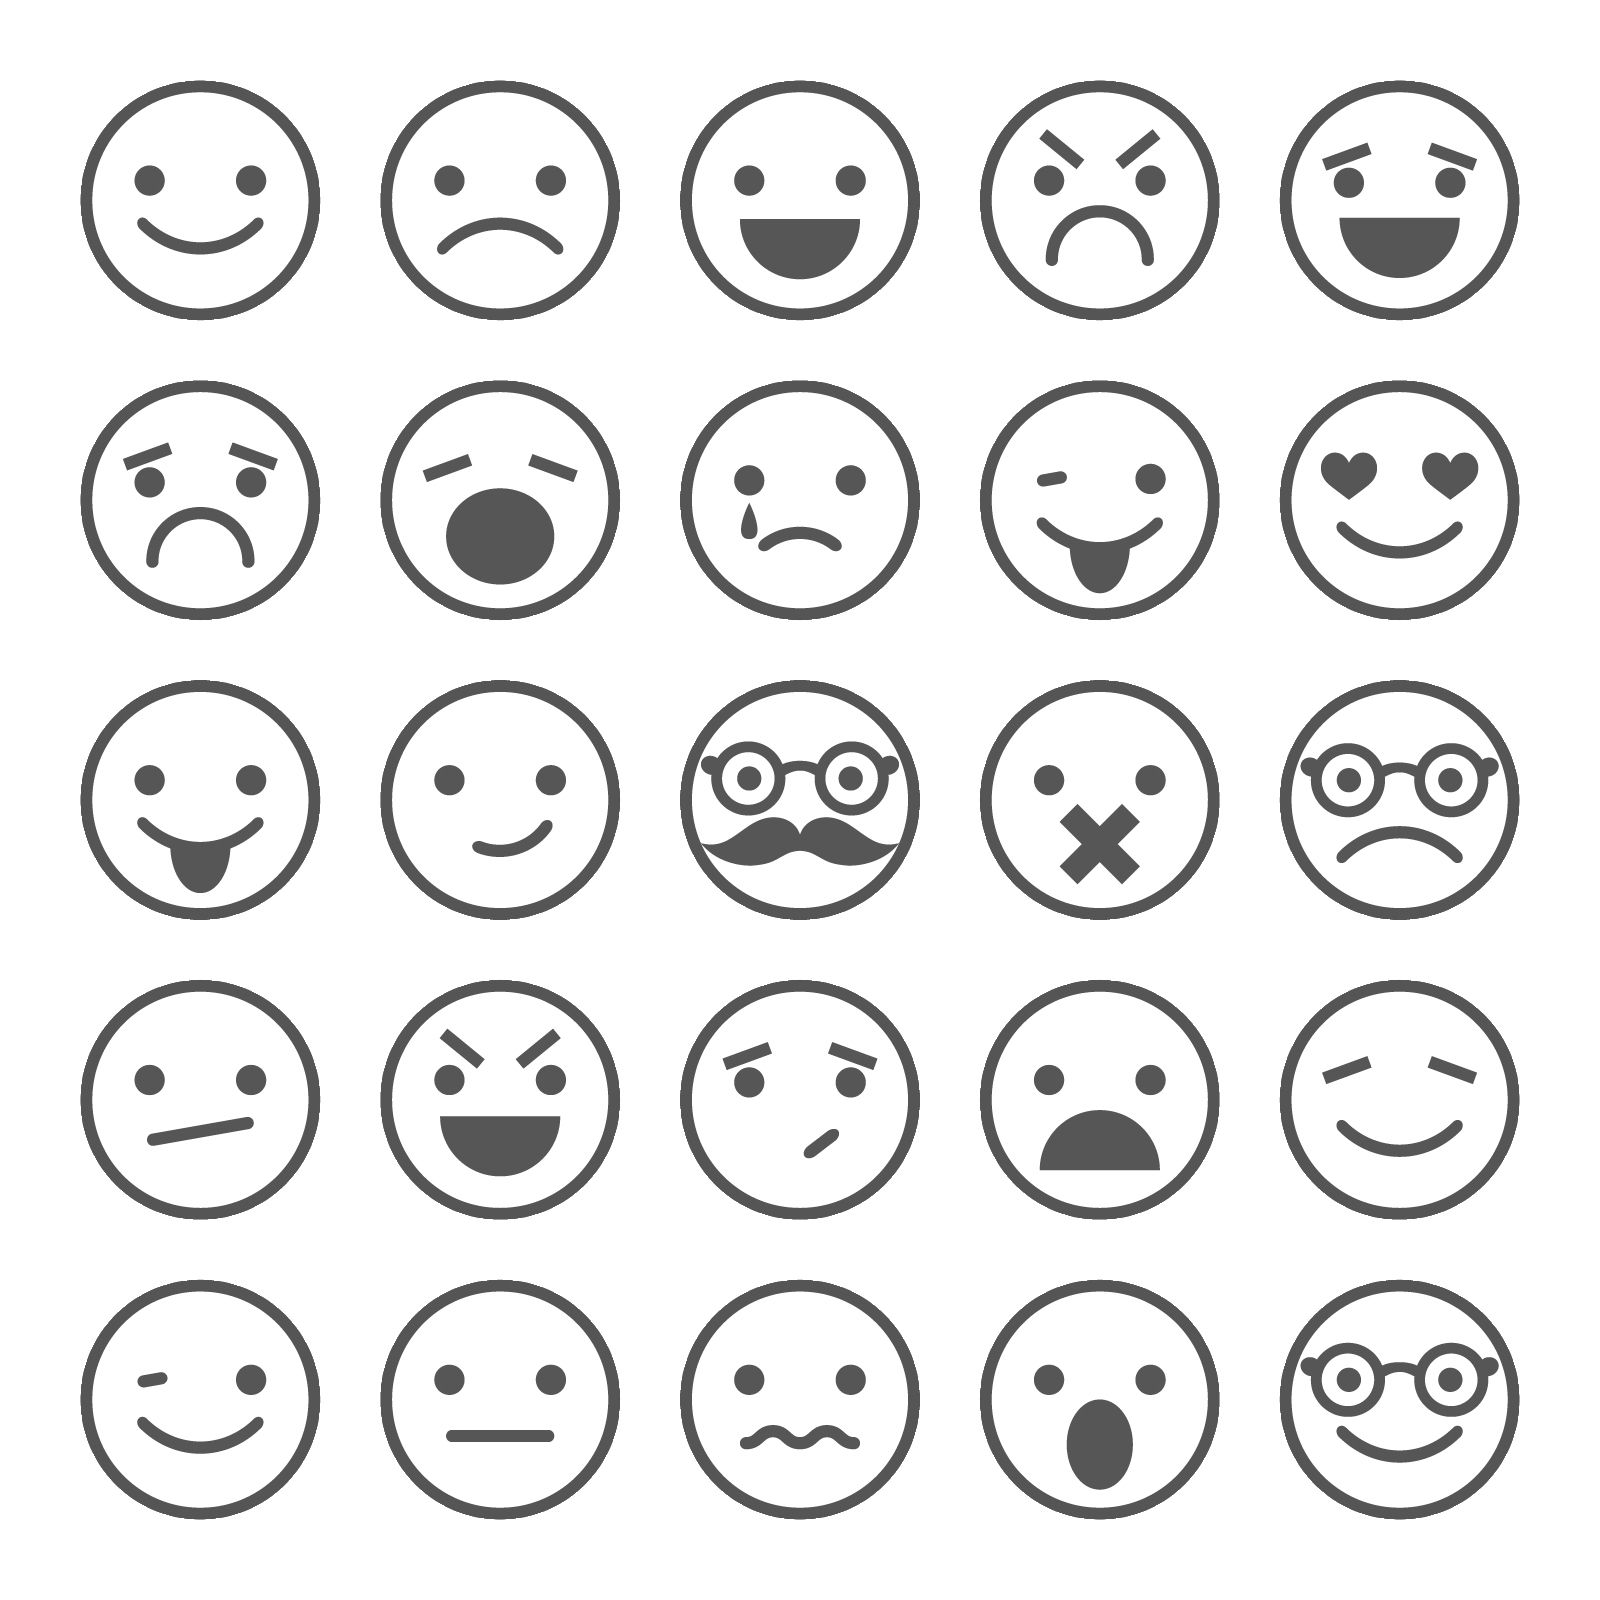 How emoticons can leave you with a sad face cool beans creative how emoticons can leave you with a sad face cool beans creative buycottarizona Choice Image